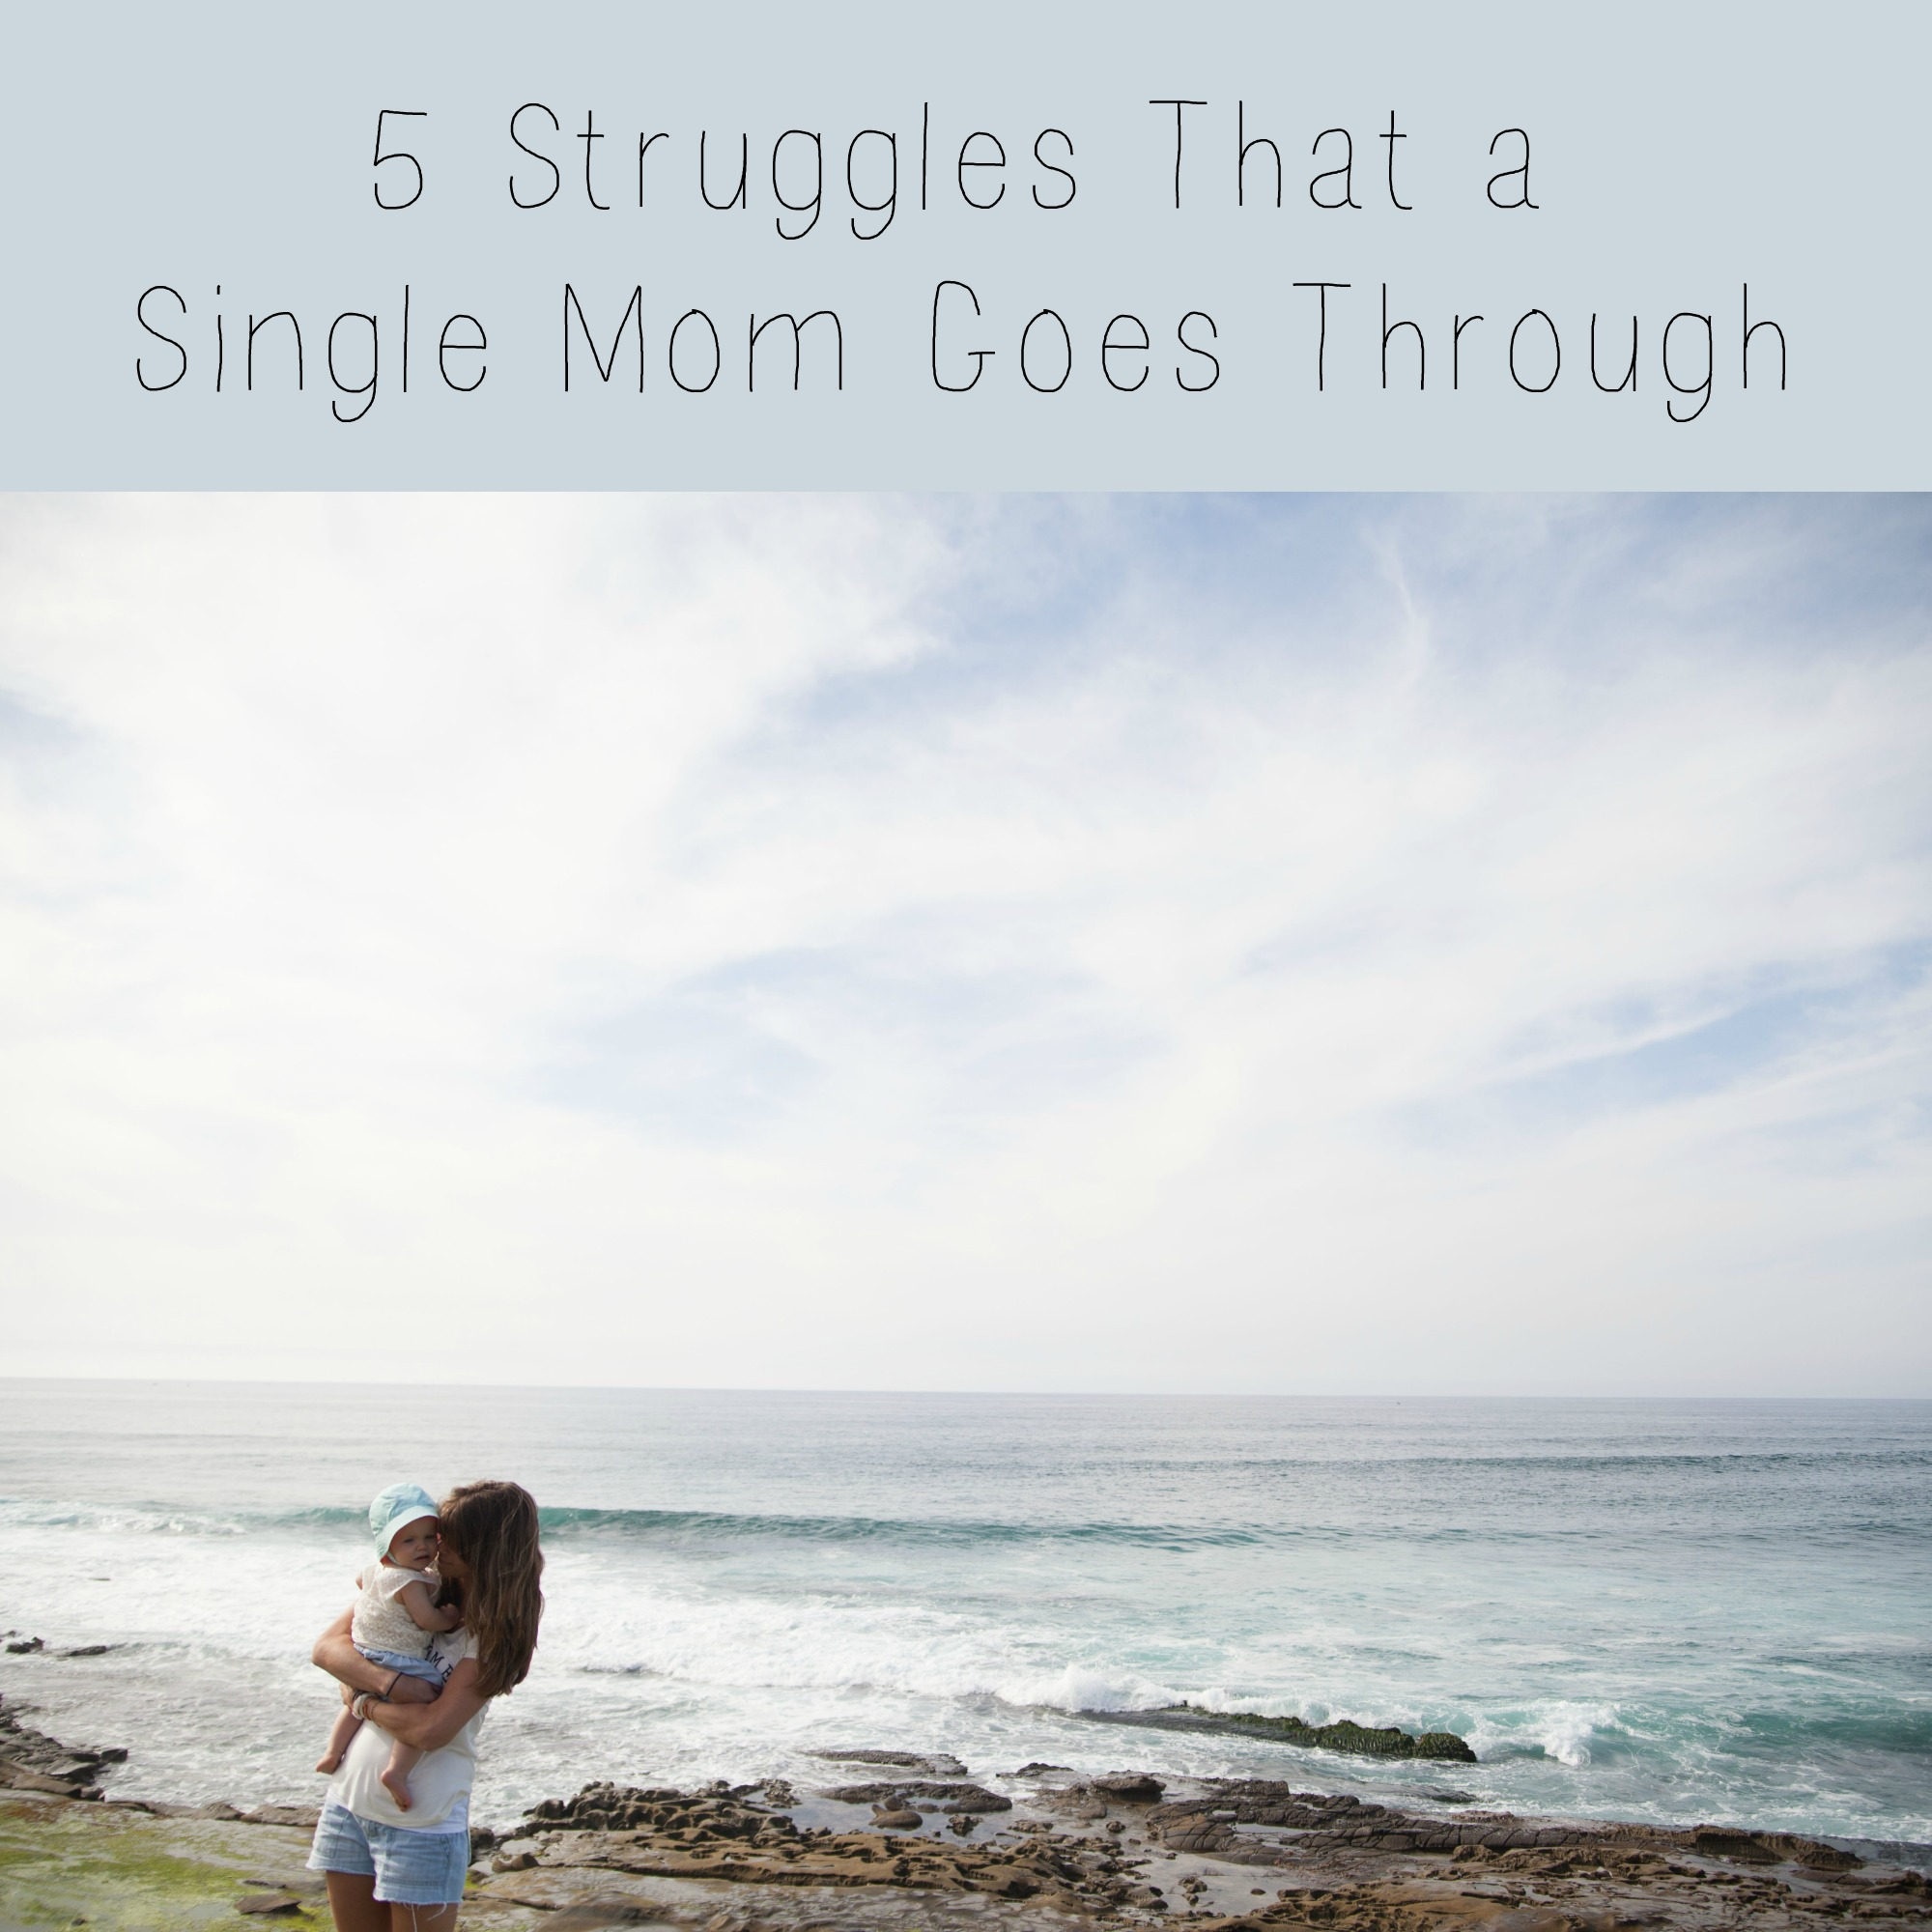 5 Struggles That a Single Mom Goes Through